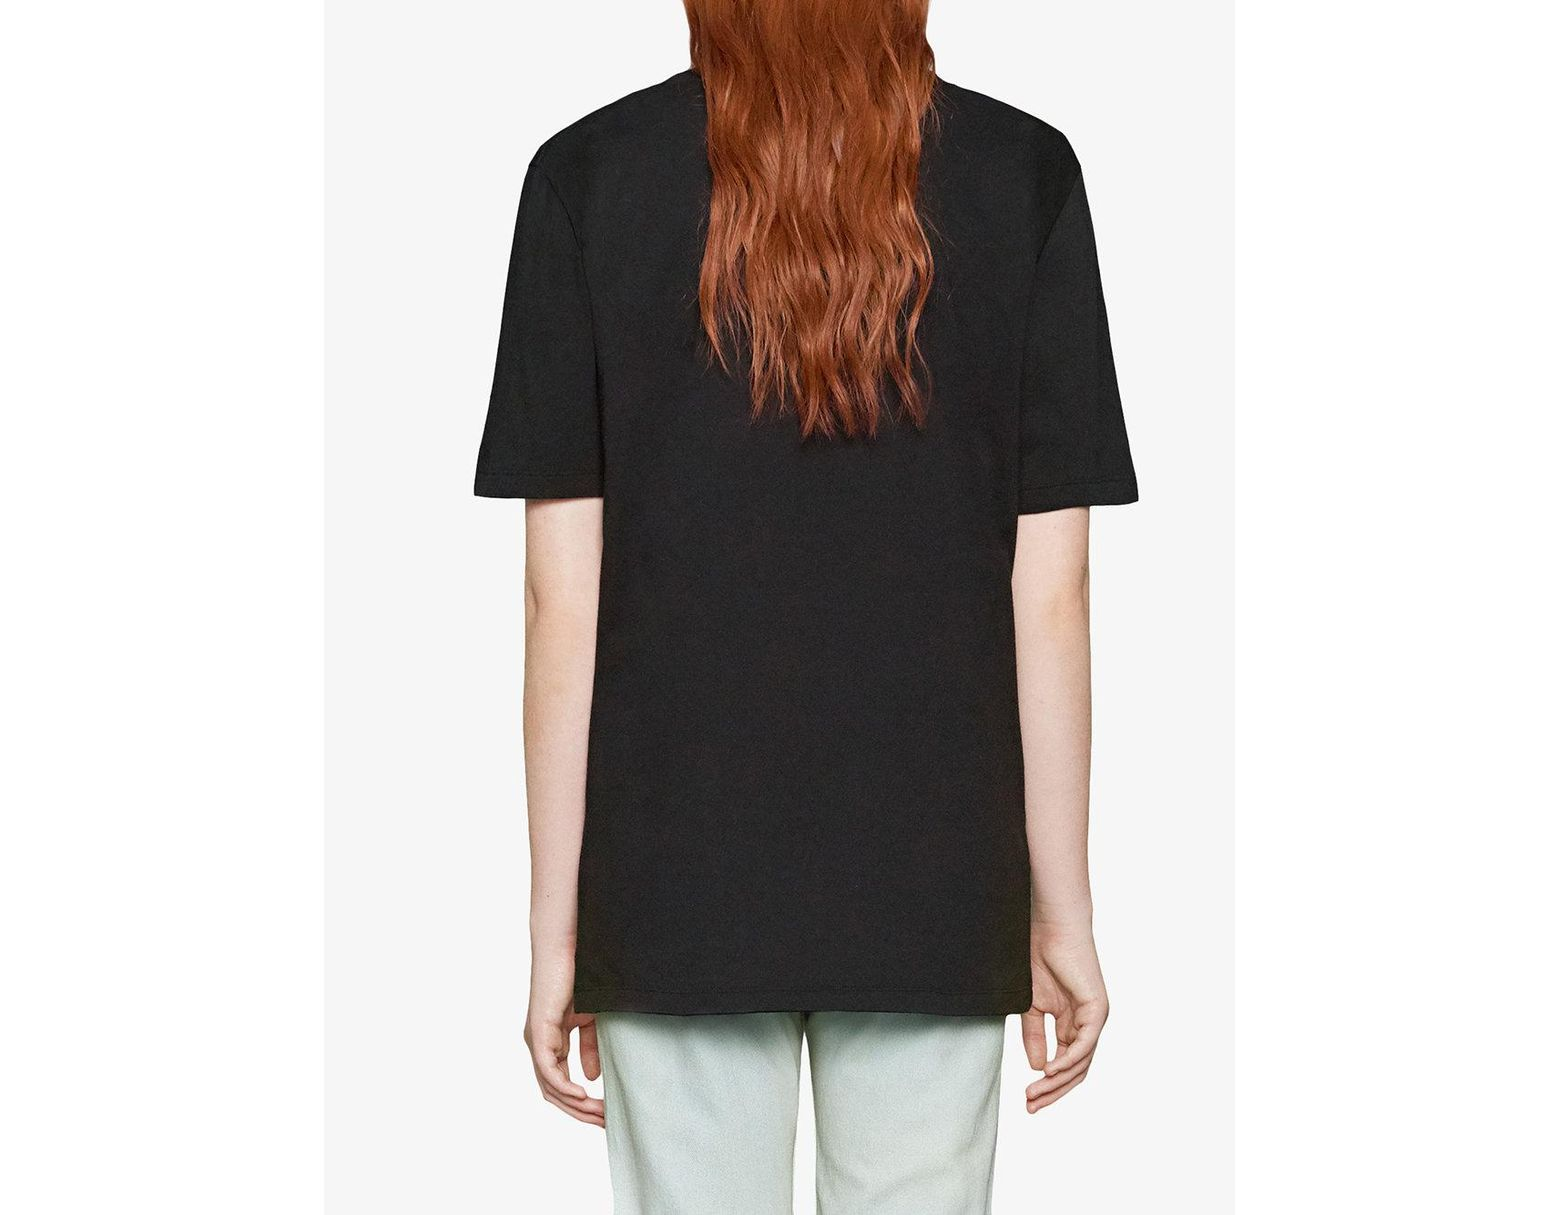 b522e0473 Gucci Bugs Bunny Cotton T-shirt in Black - Save 10% - Lyst